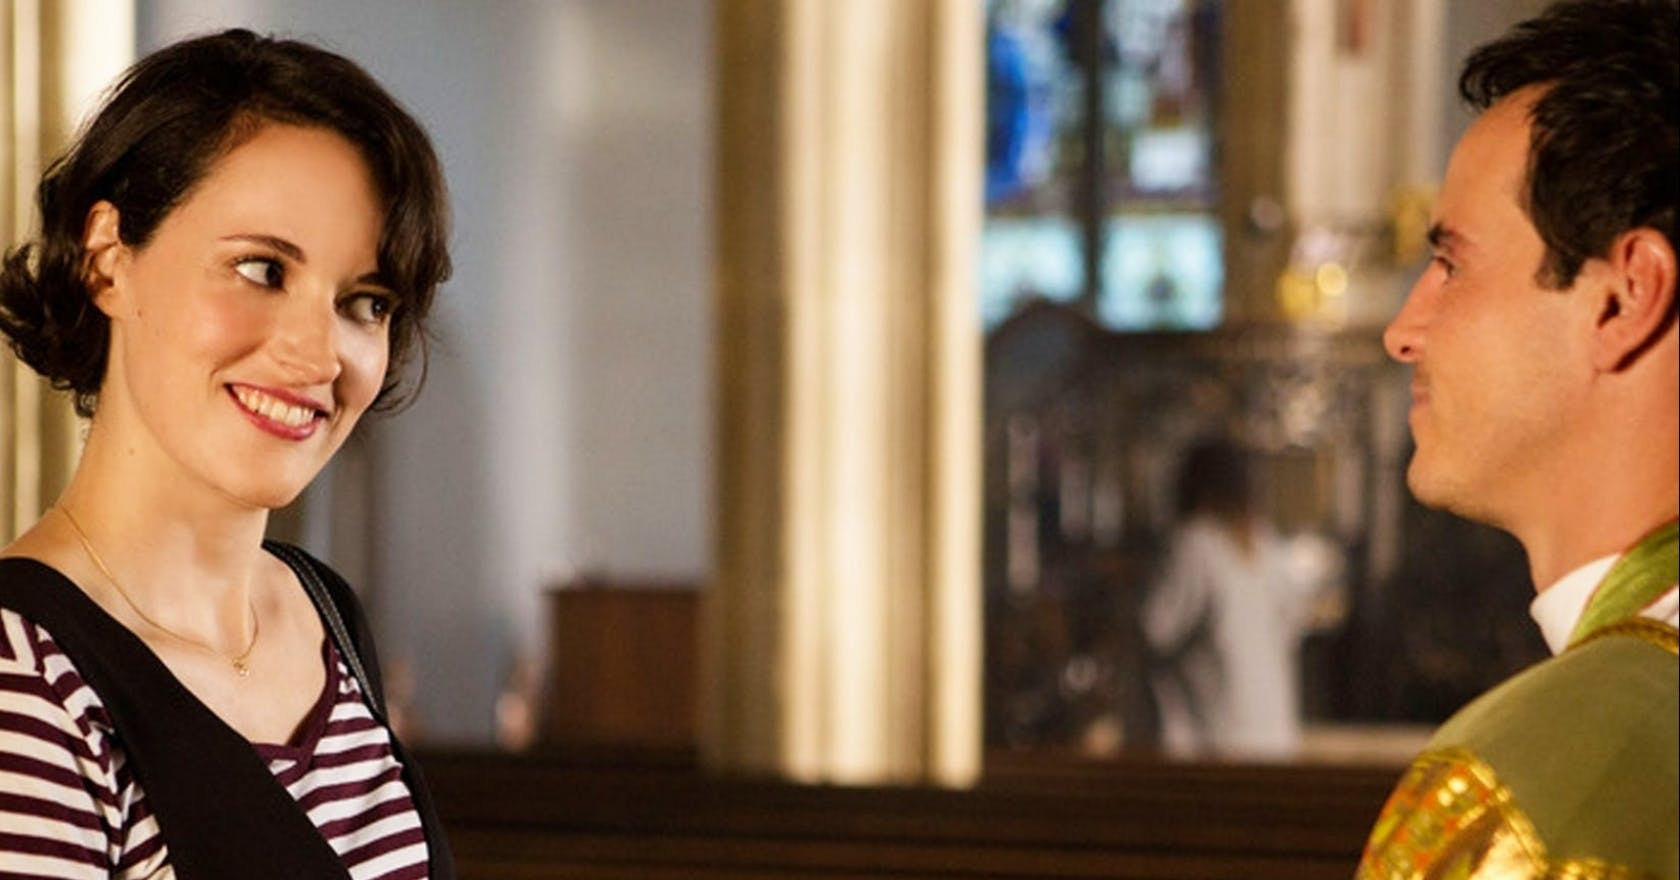 Phoebe Waller-Bridge consulted a real-life priest to create that iconic Fleabag character